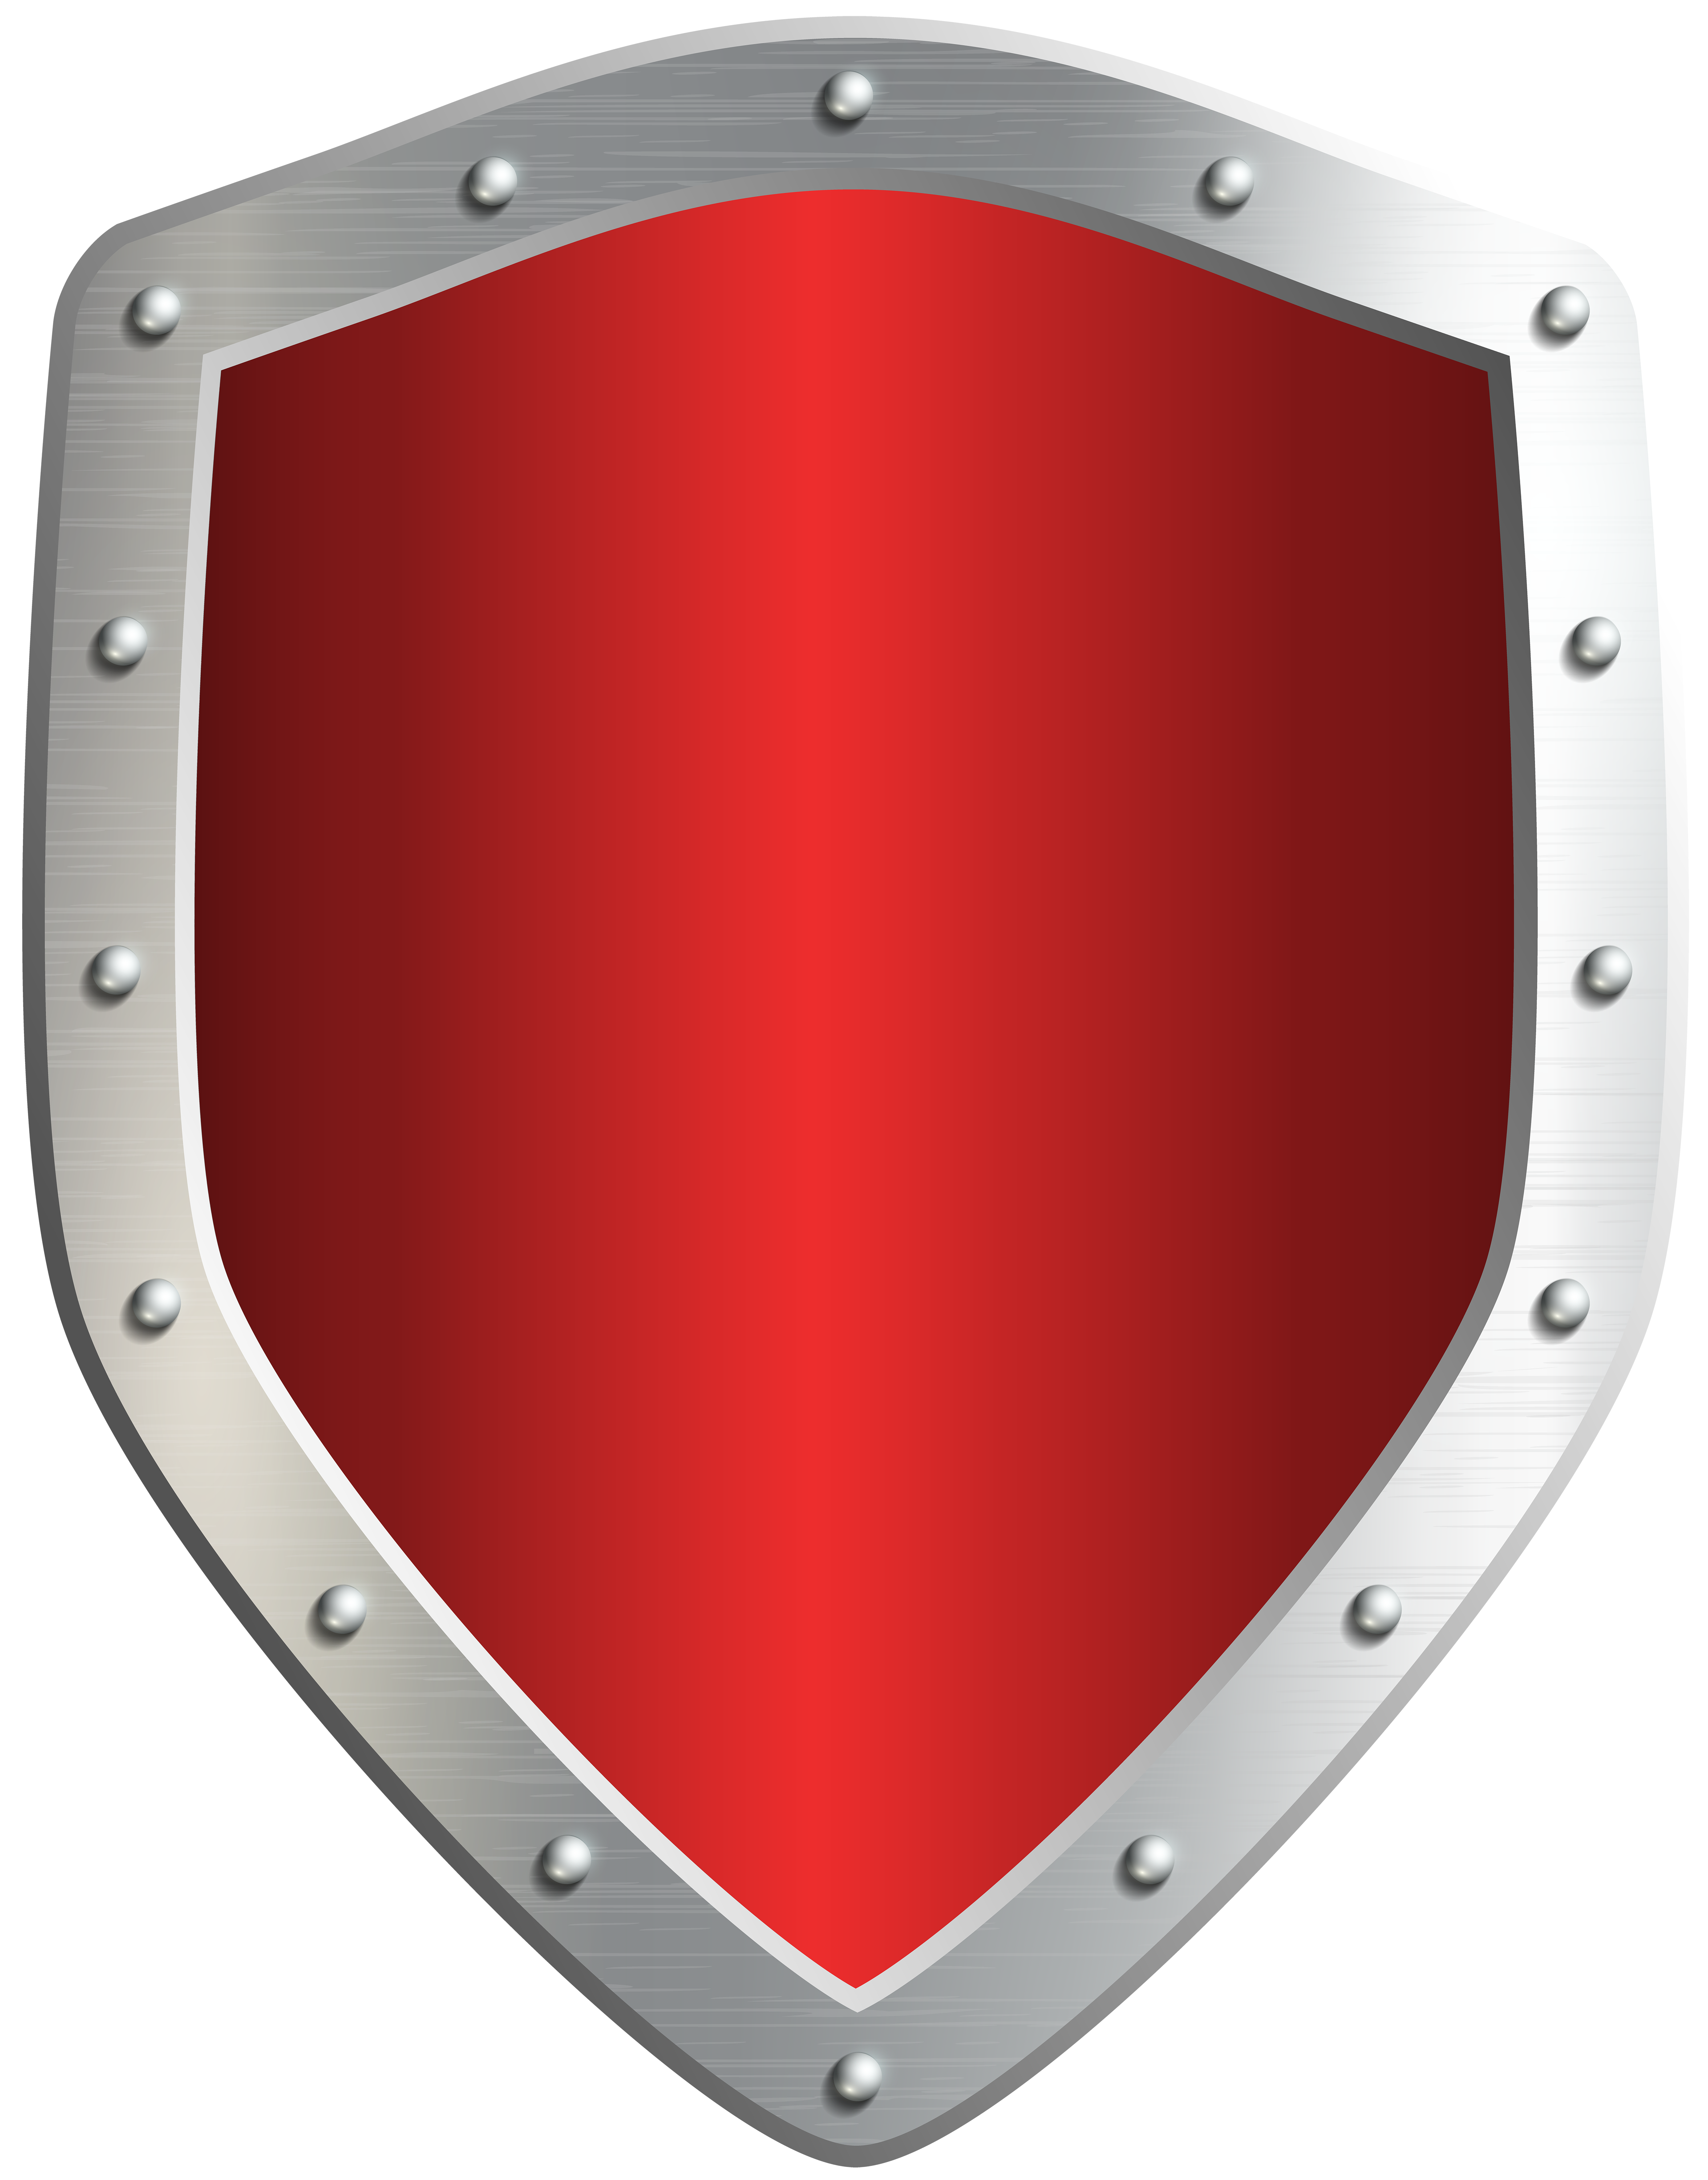 Badge clipart shield. Png clip art gallery